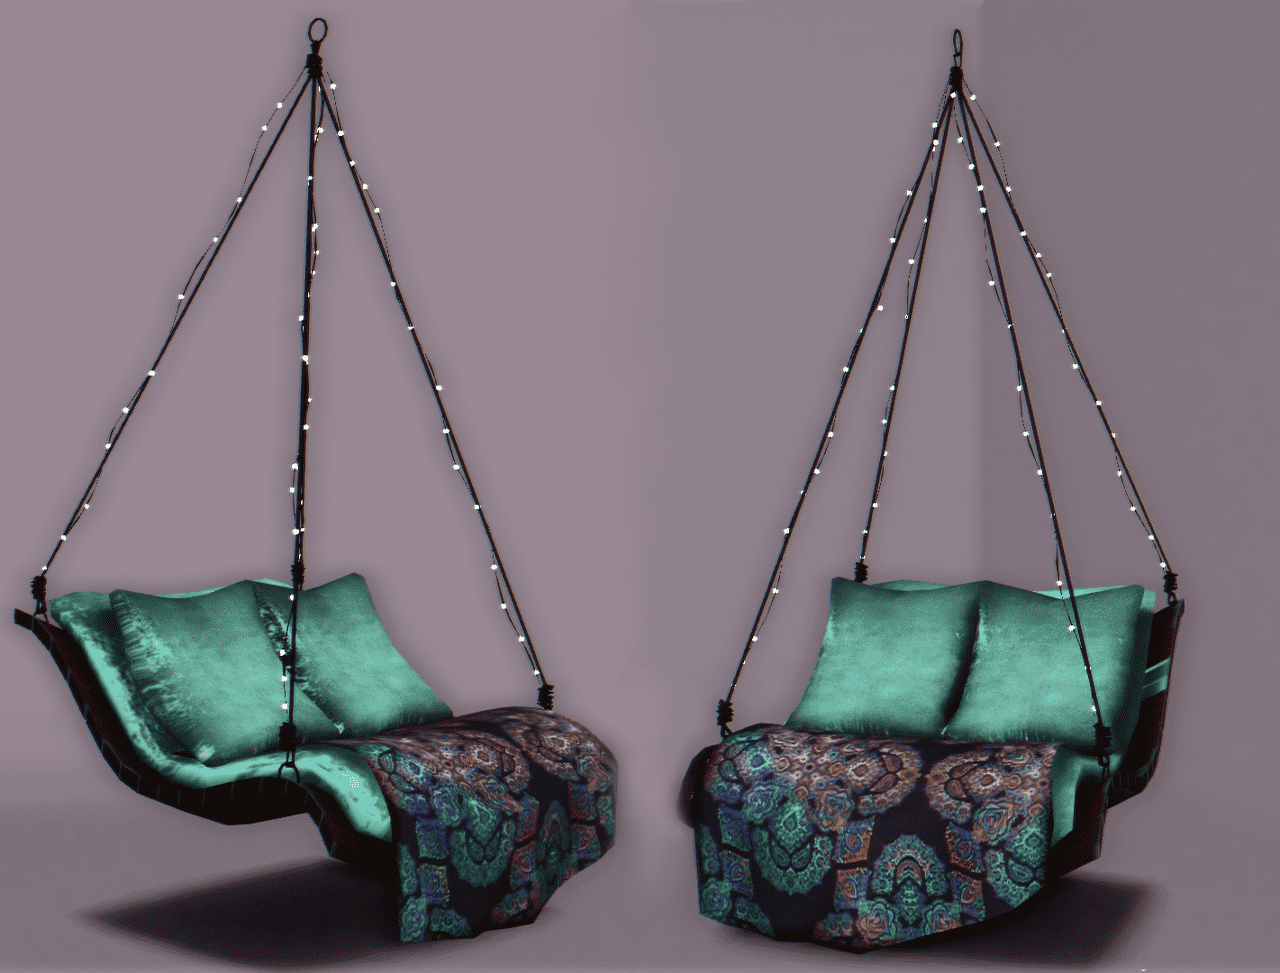 Lana Cc Finds Pixelecstasy Hanging Chair Conversion You